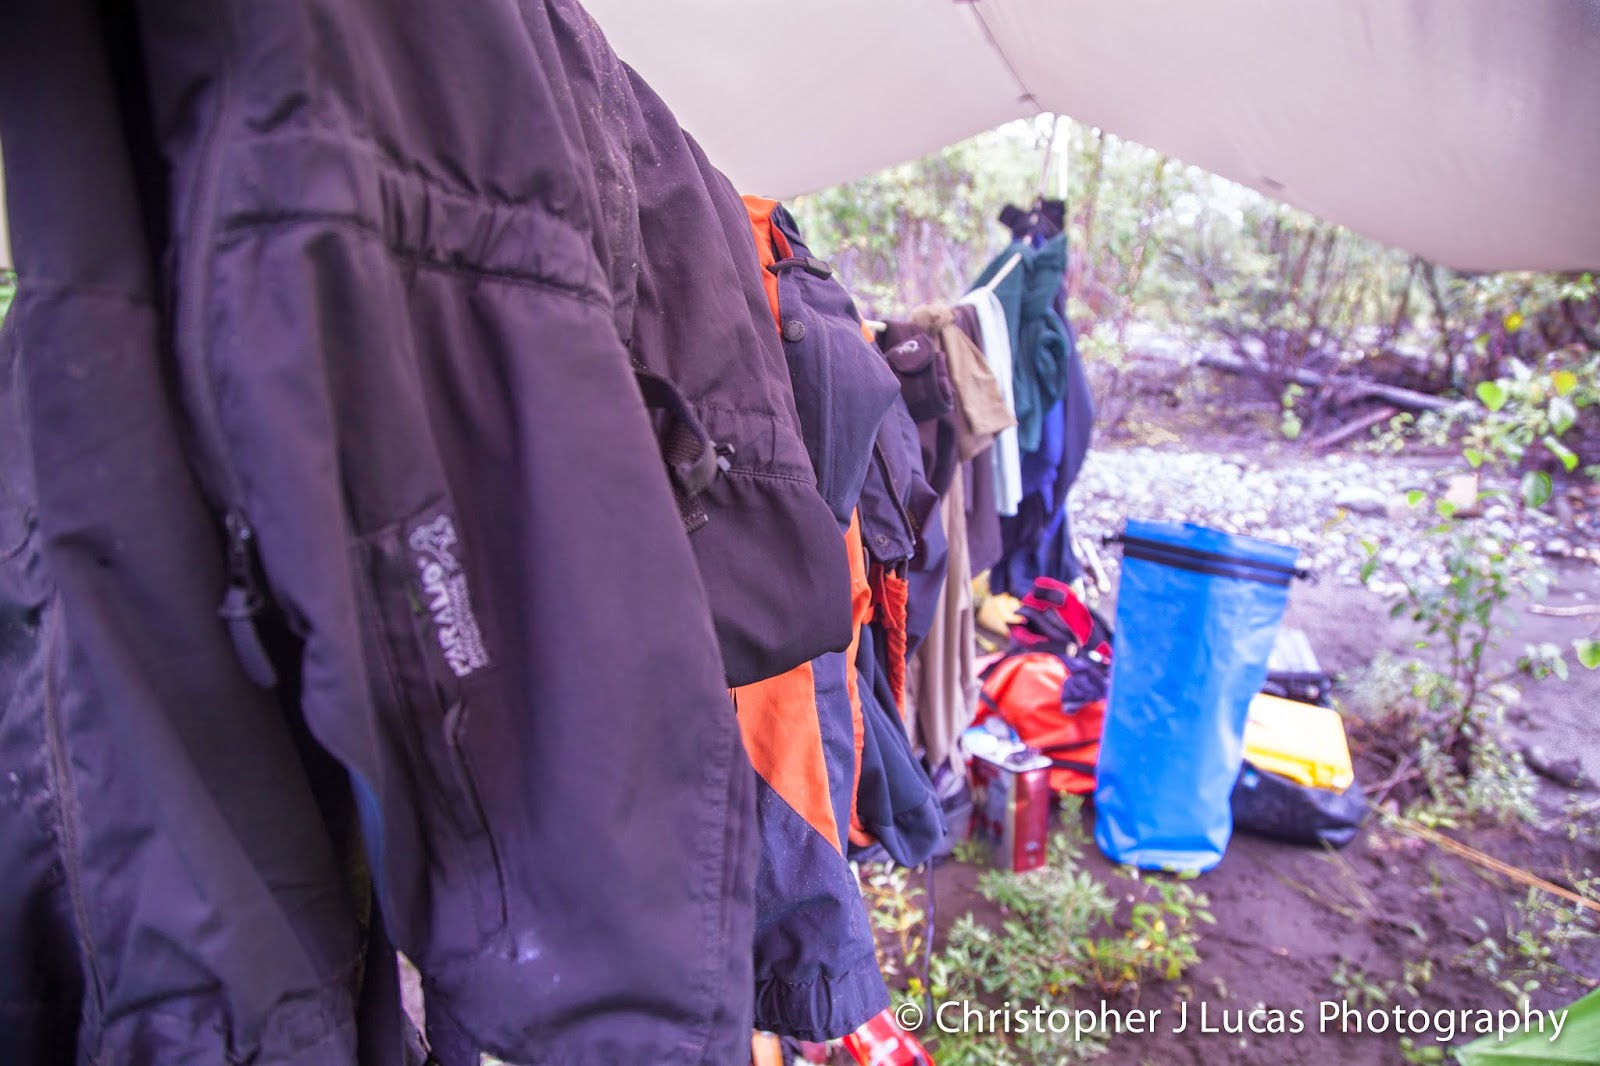 Light My Fire Blog Sharing Our Adventures Jacket Tad Inner Polar Safety Trying To Dry Gear